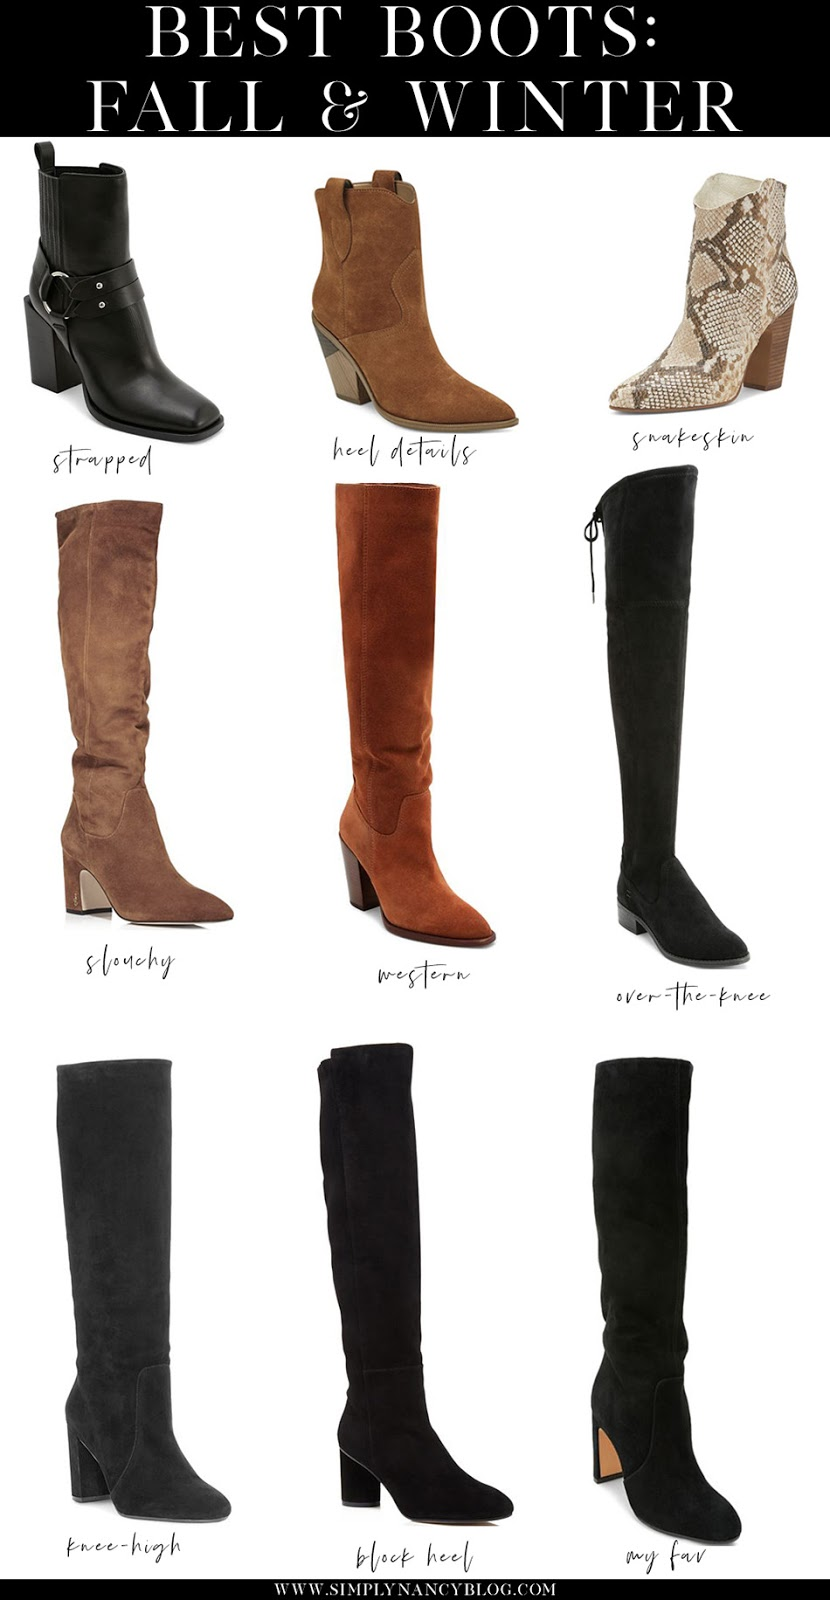 black friday/cyber monday best boots under $200 | dolce vita, stuart weitzman, vince camuto, sam edelmam, marc fisher